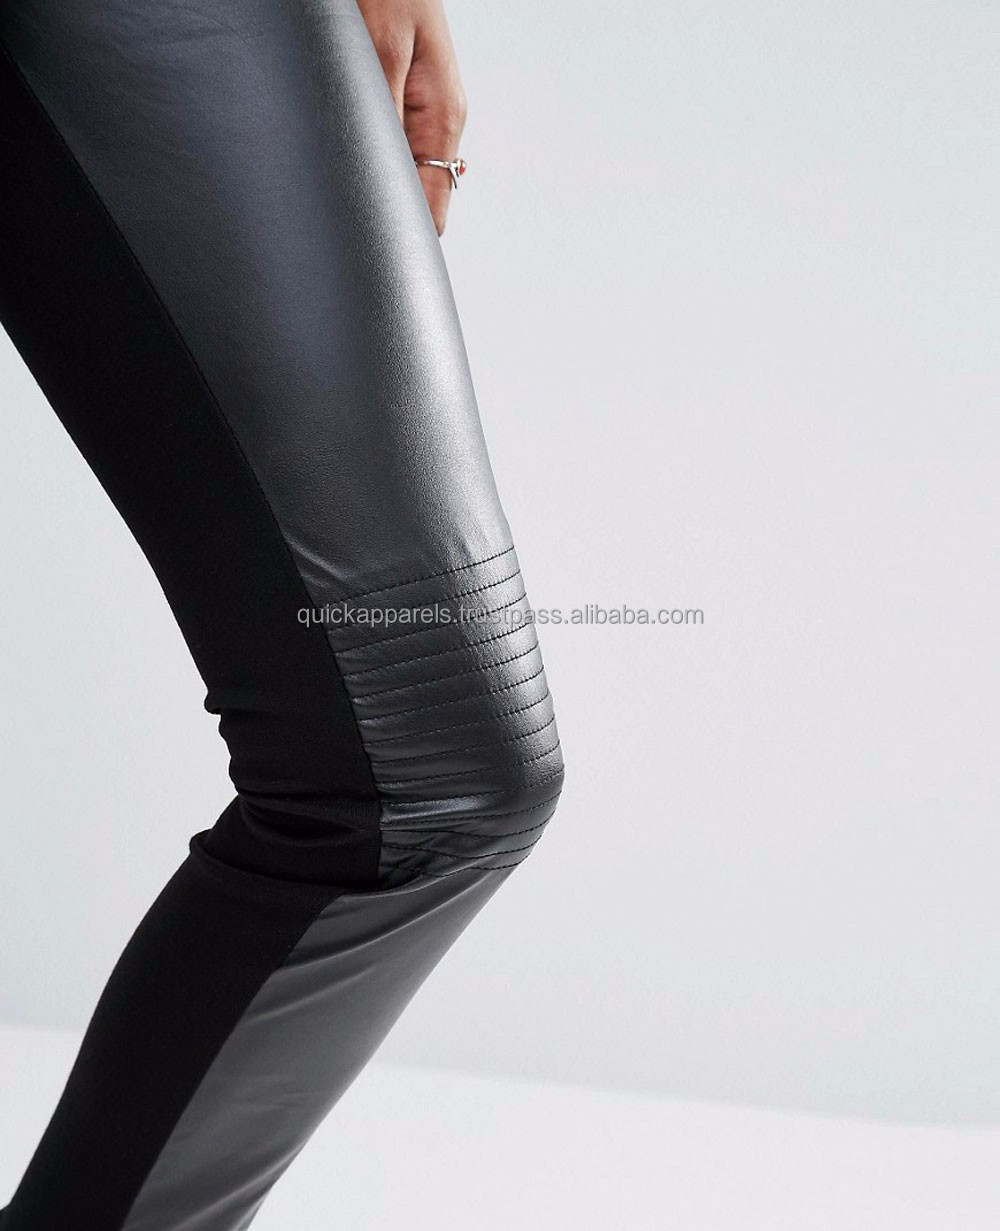 Custom Wholesale Colorful Women's Compression Tights Yoga Pants Absolute Workout leggings